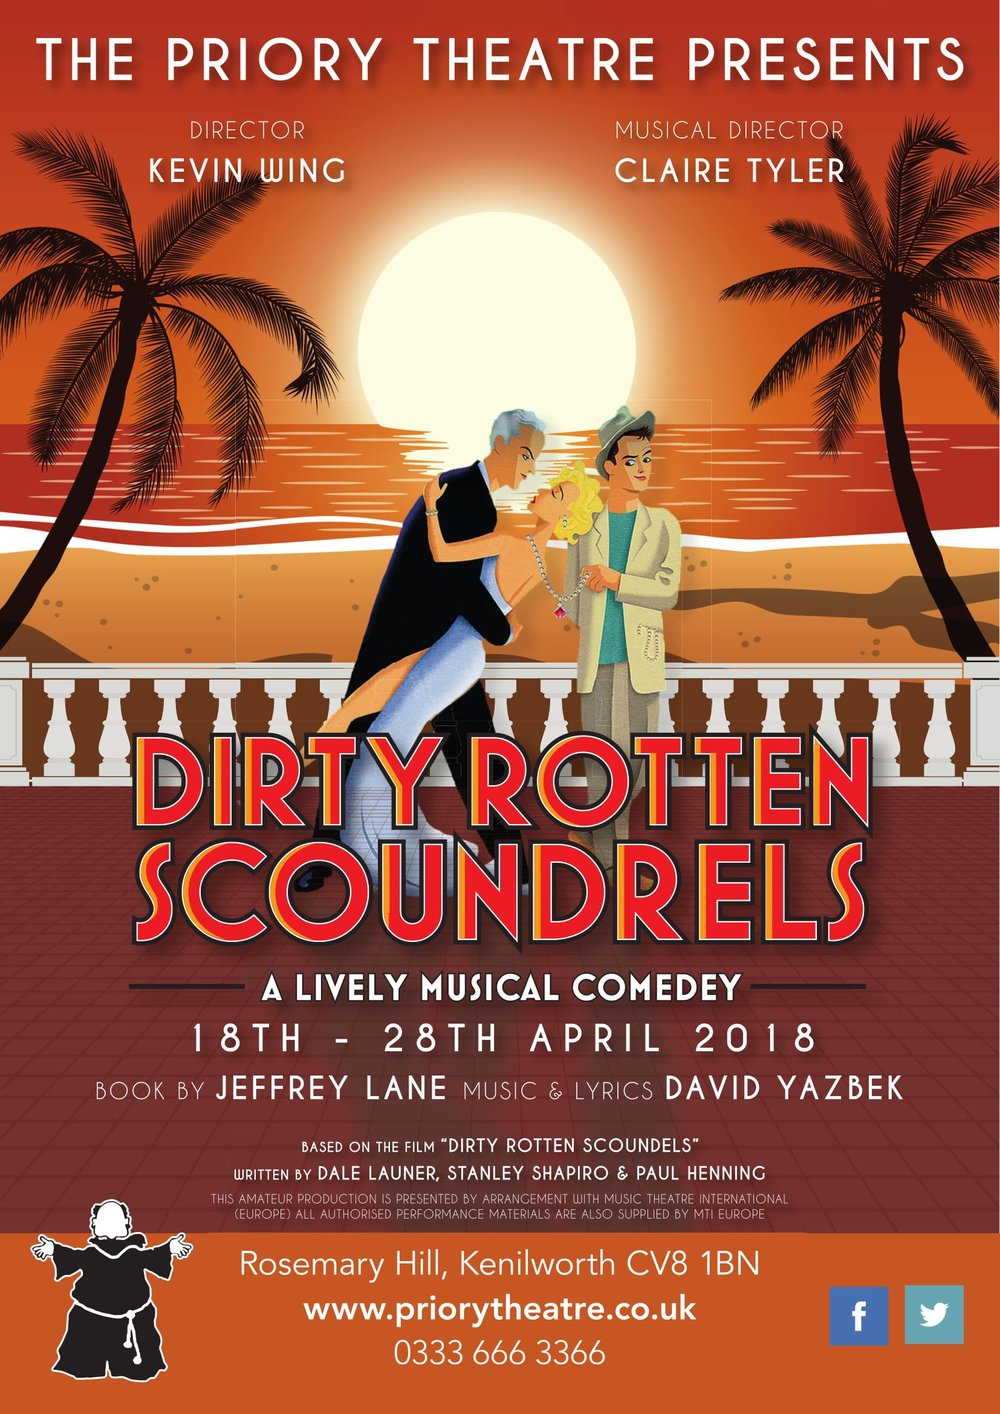 Dirty Rotten Scoundrels_A01-1.jpg